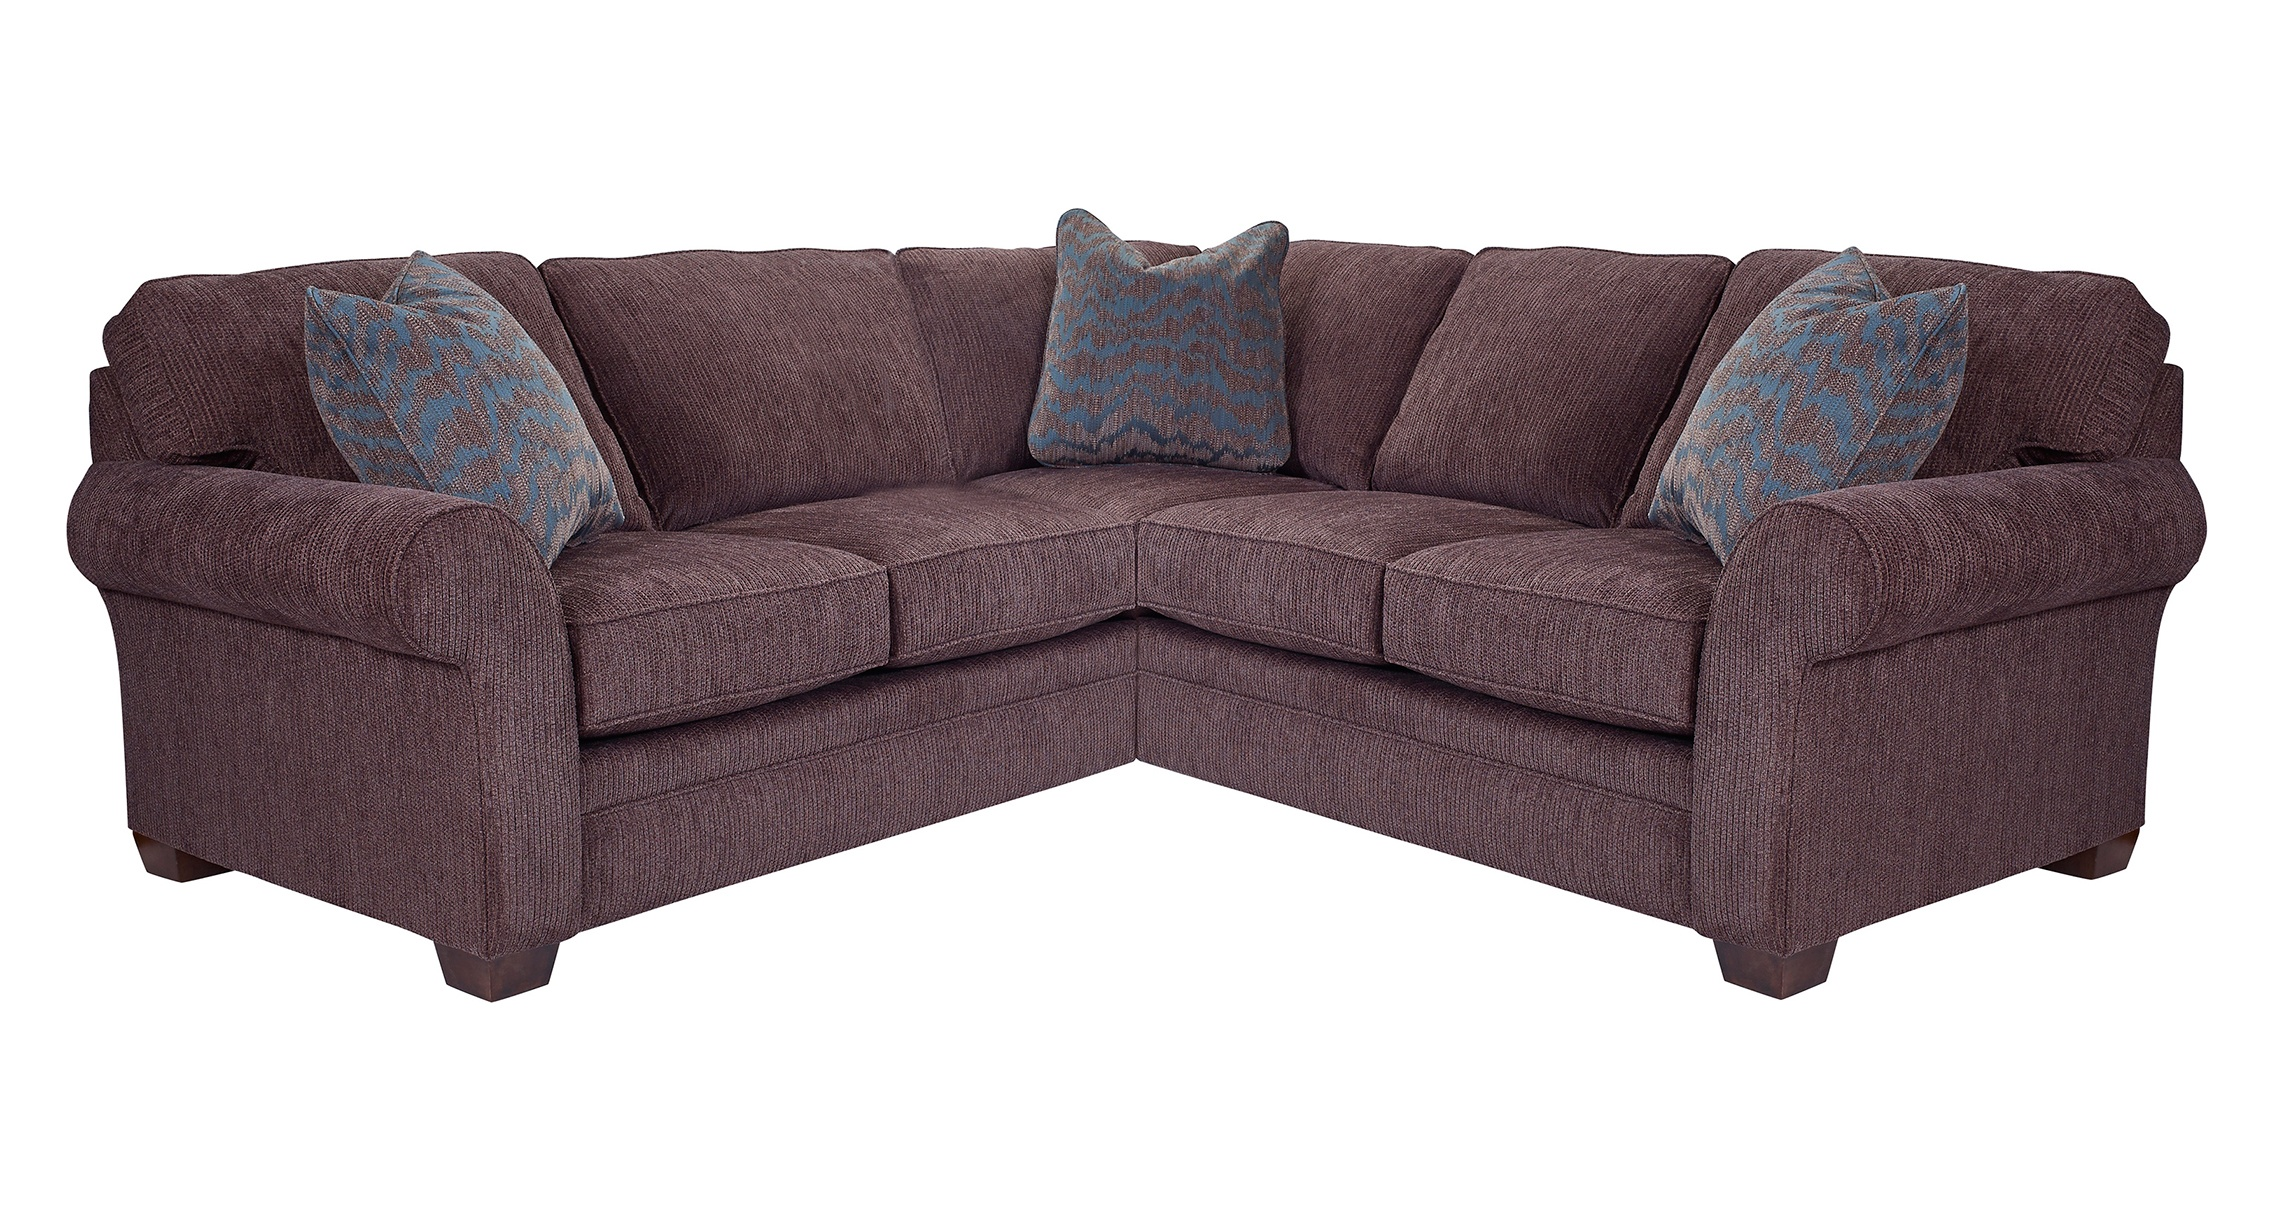 Awe Inspiring Zachary 7920 Sectional Sofas And Sectionals Lamtechconsult Wood Chair Design Ideas Lamtechconsultcom